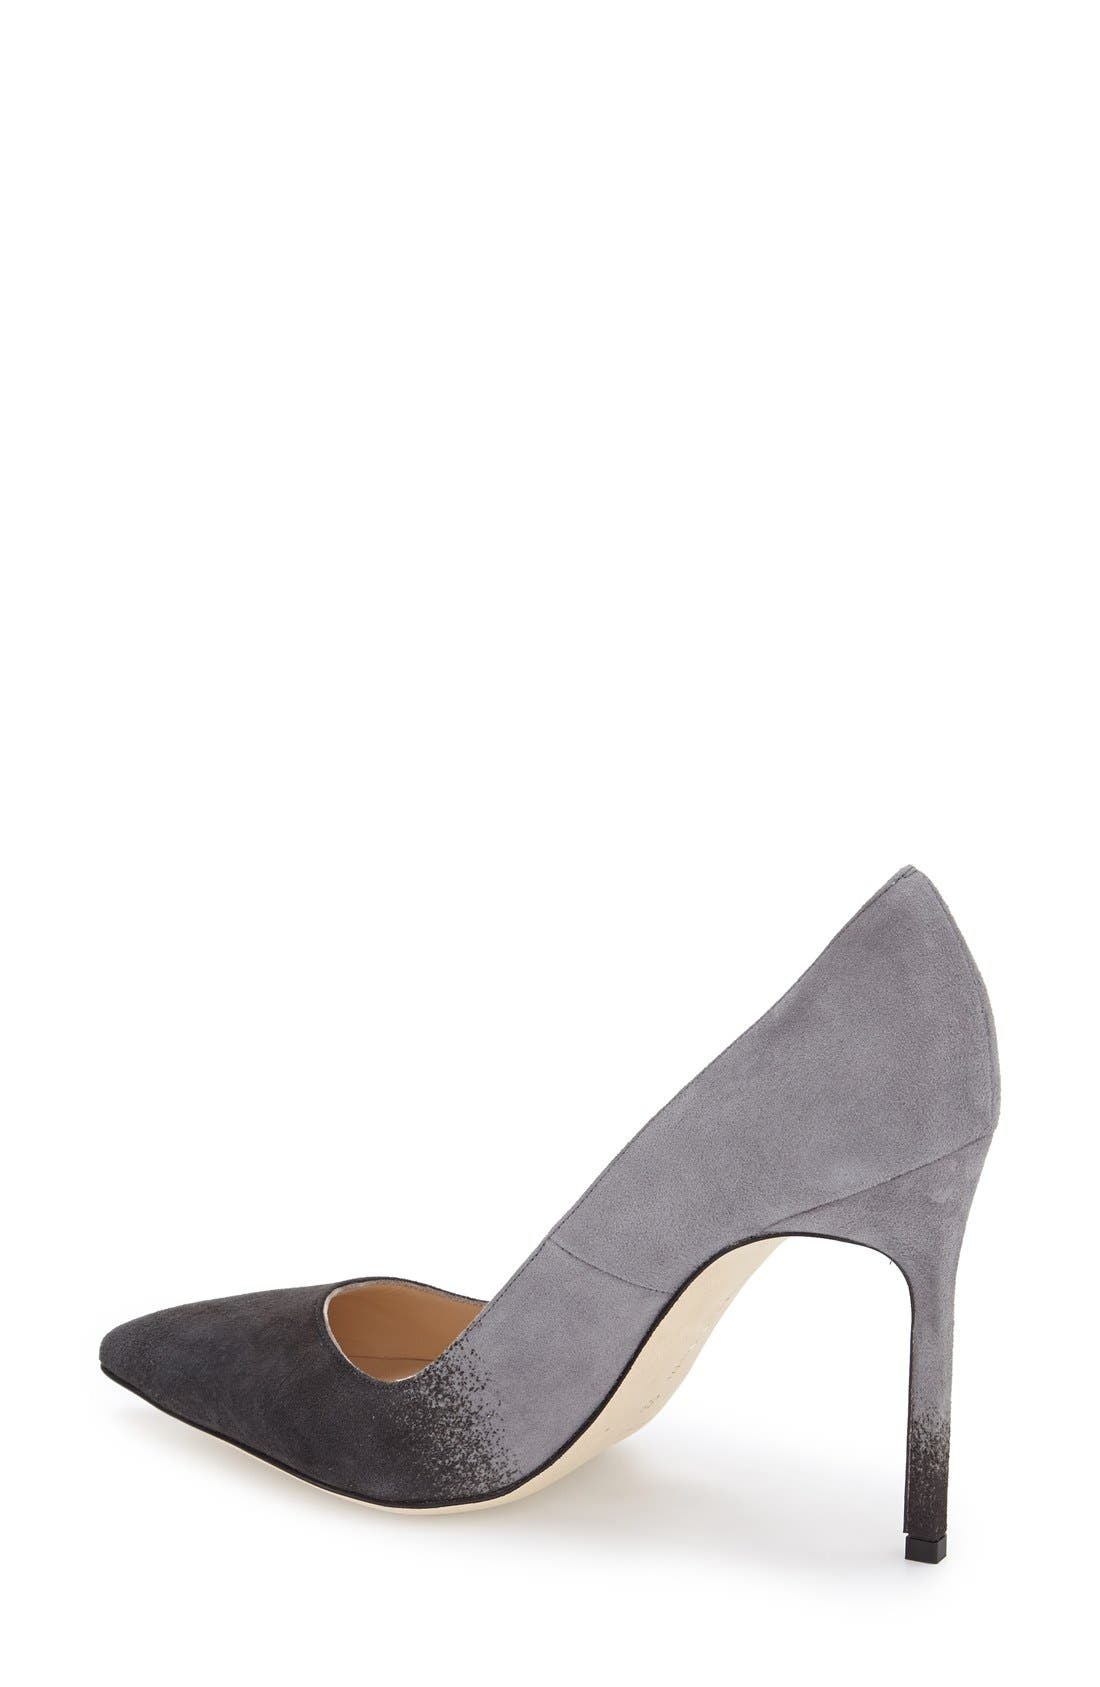 BB Pointy Toe Pump,                             Alternate thumbnail 4, color,                             001